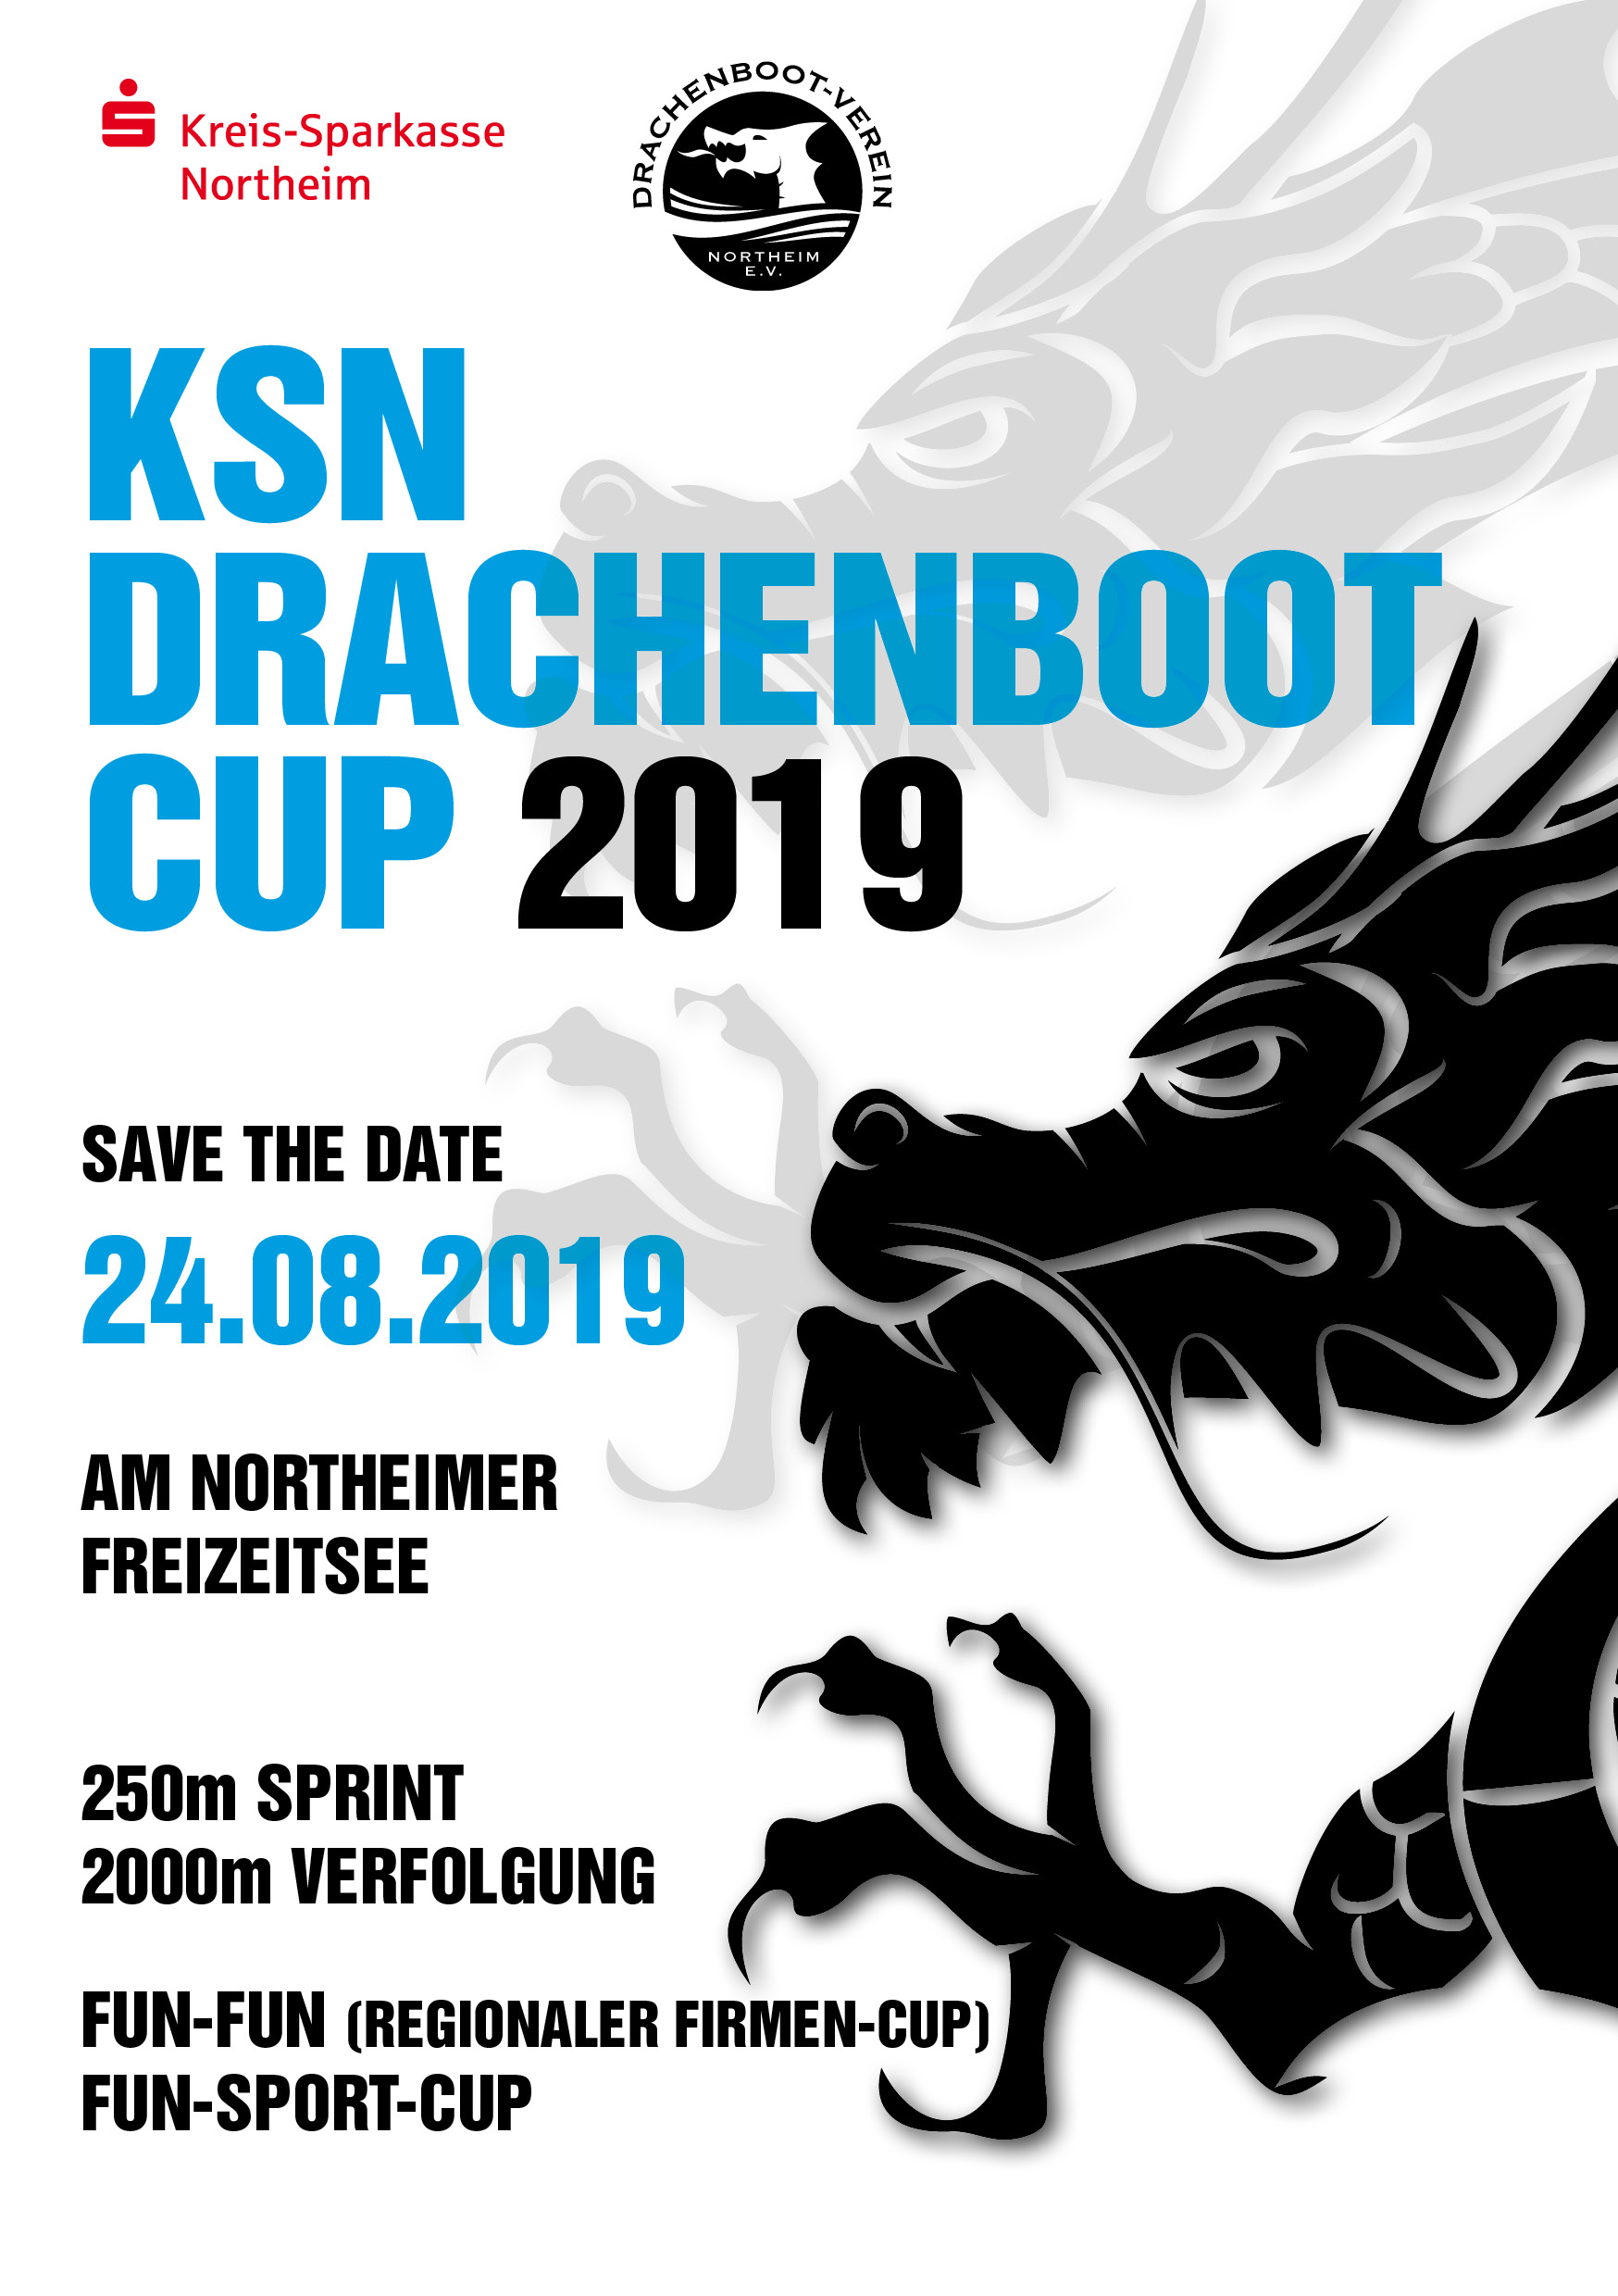 KSNCUP2019 A5 Flyer SaveTheDate Teams